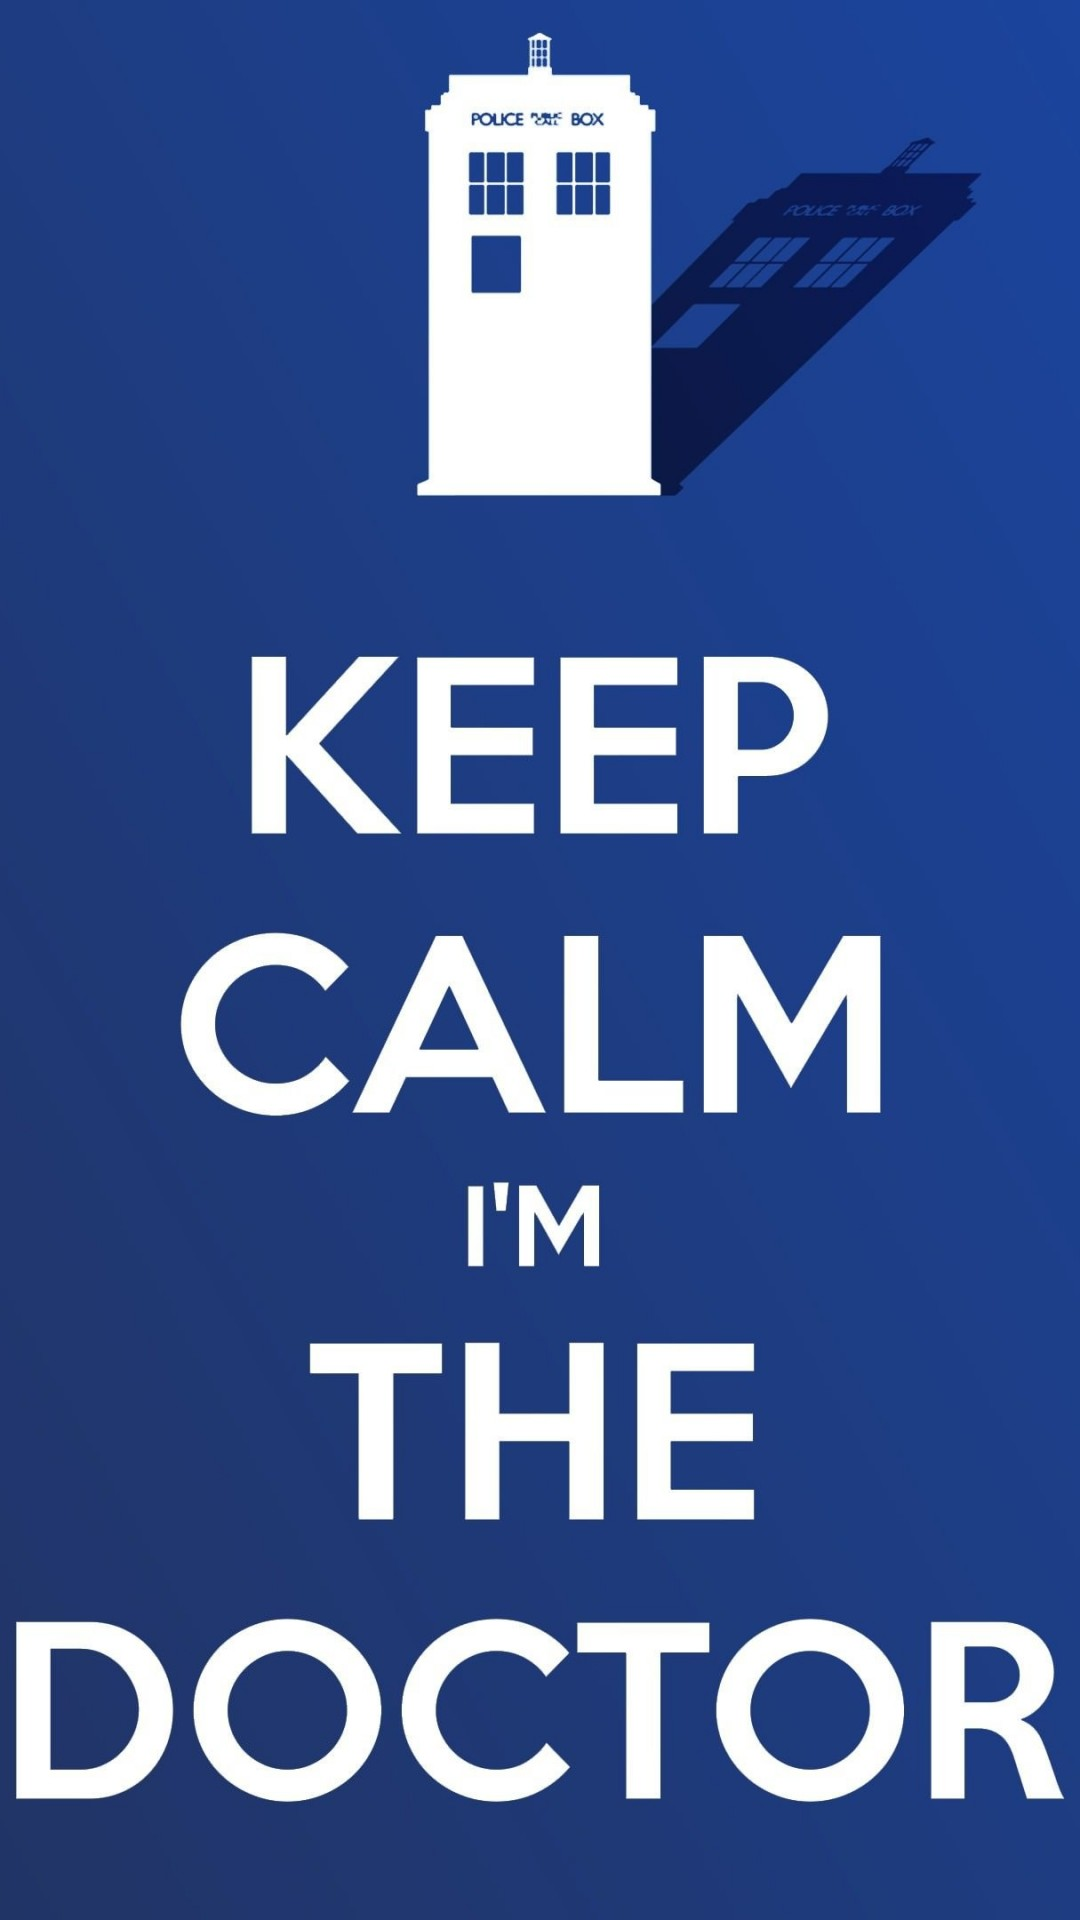 Keep Calm Im The Doctor Wallpaper for SONY Xperia Z3